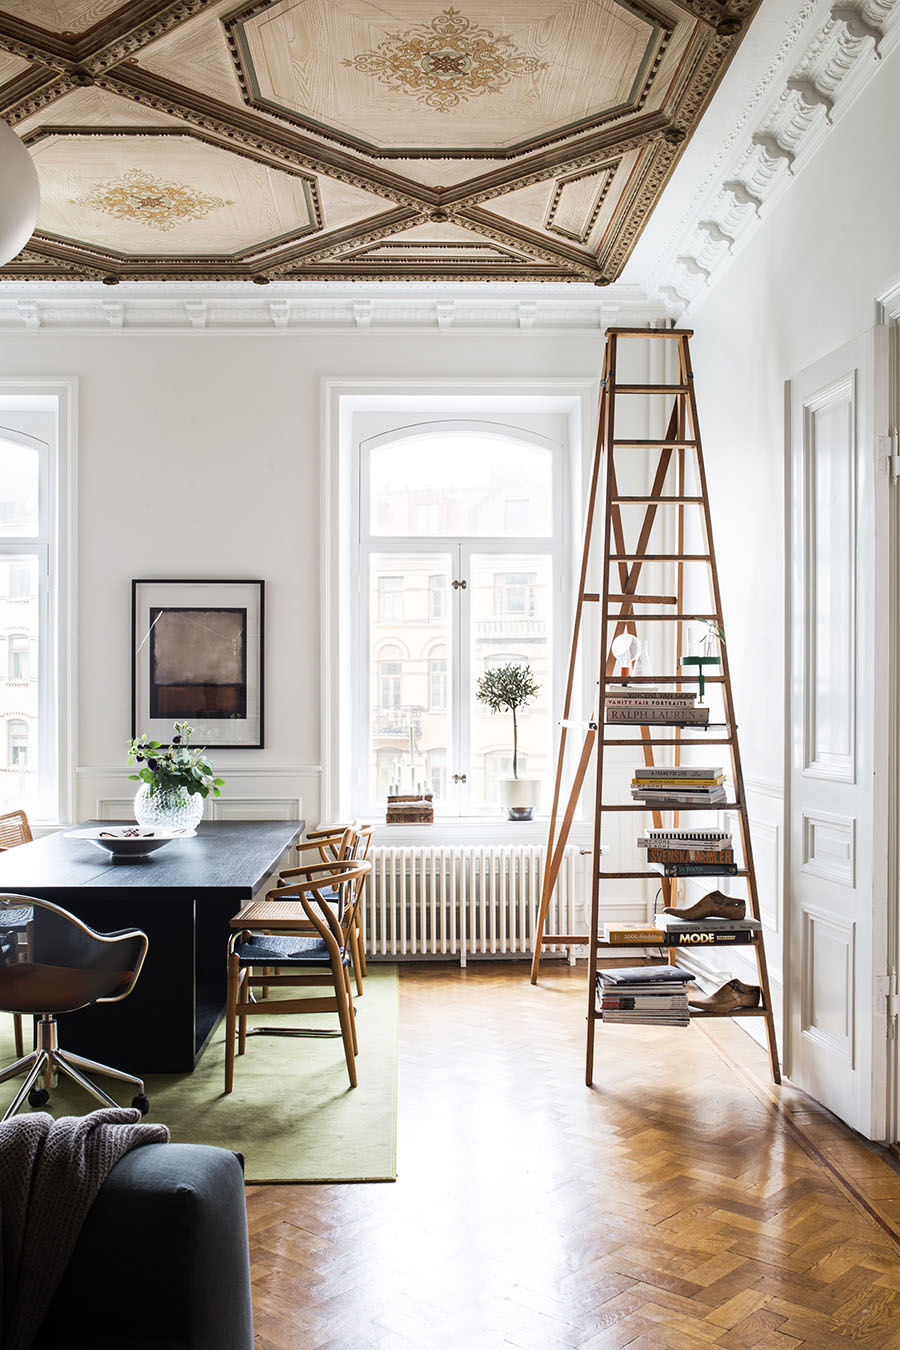 Scandinavian apartment, wegner wishbone chairs, ladder bookshelf, painted ceiling, double doors